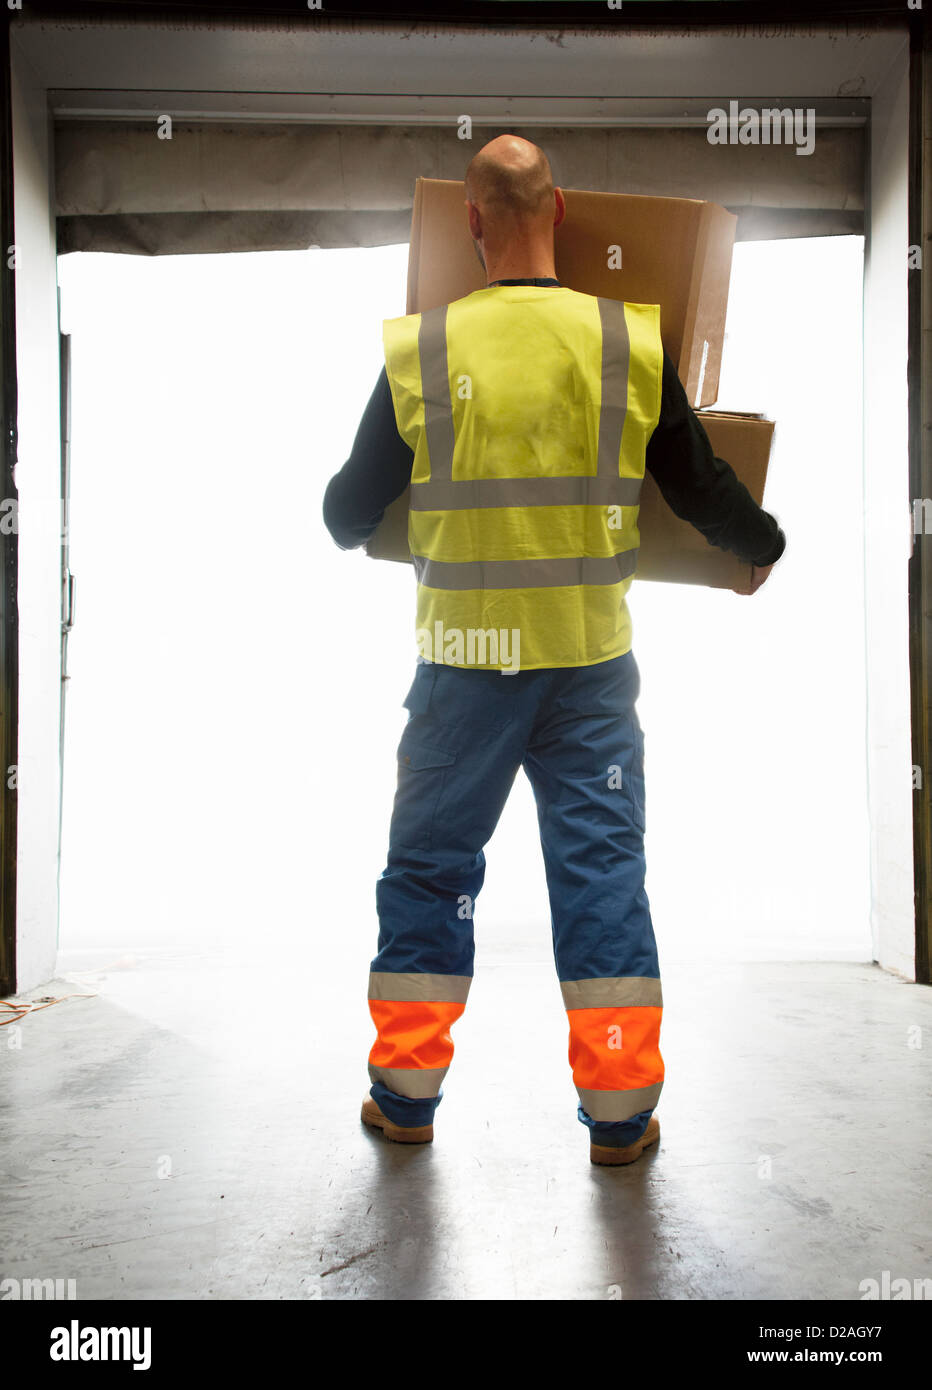 Worker carrying boxes in warehouse Stock Photo